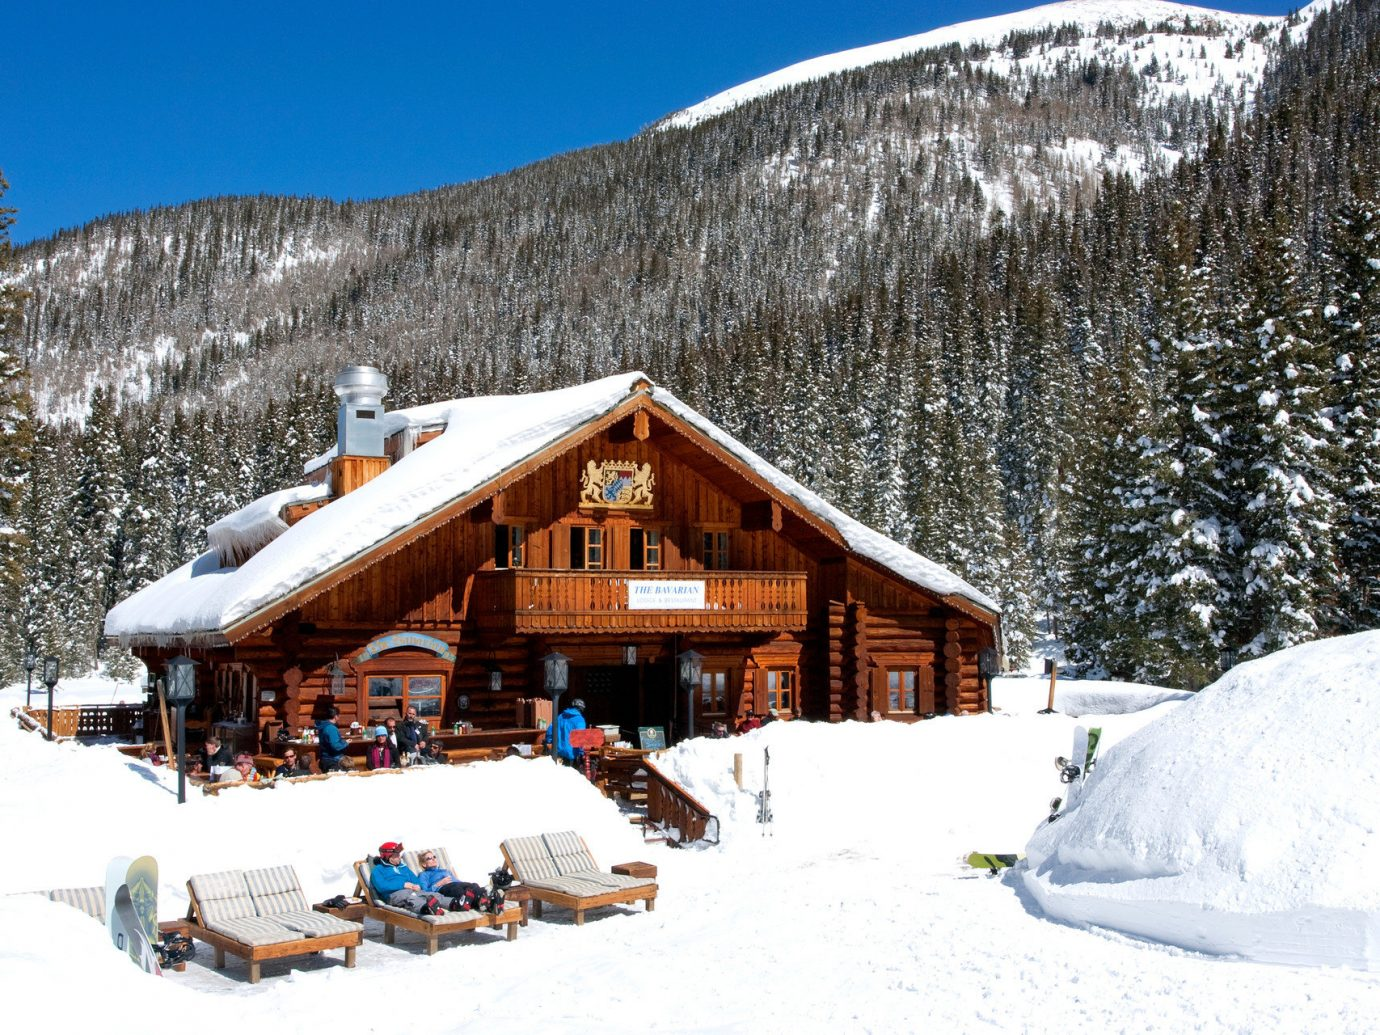 Trip Ideas snow outdoor sky skiing Nature Winter mountain weather building Resort geological phenomenon season mountain range hut covered slope house piste log cabin alps ski slope day